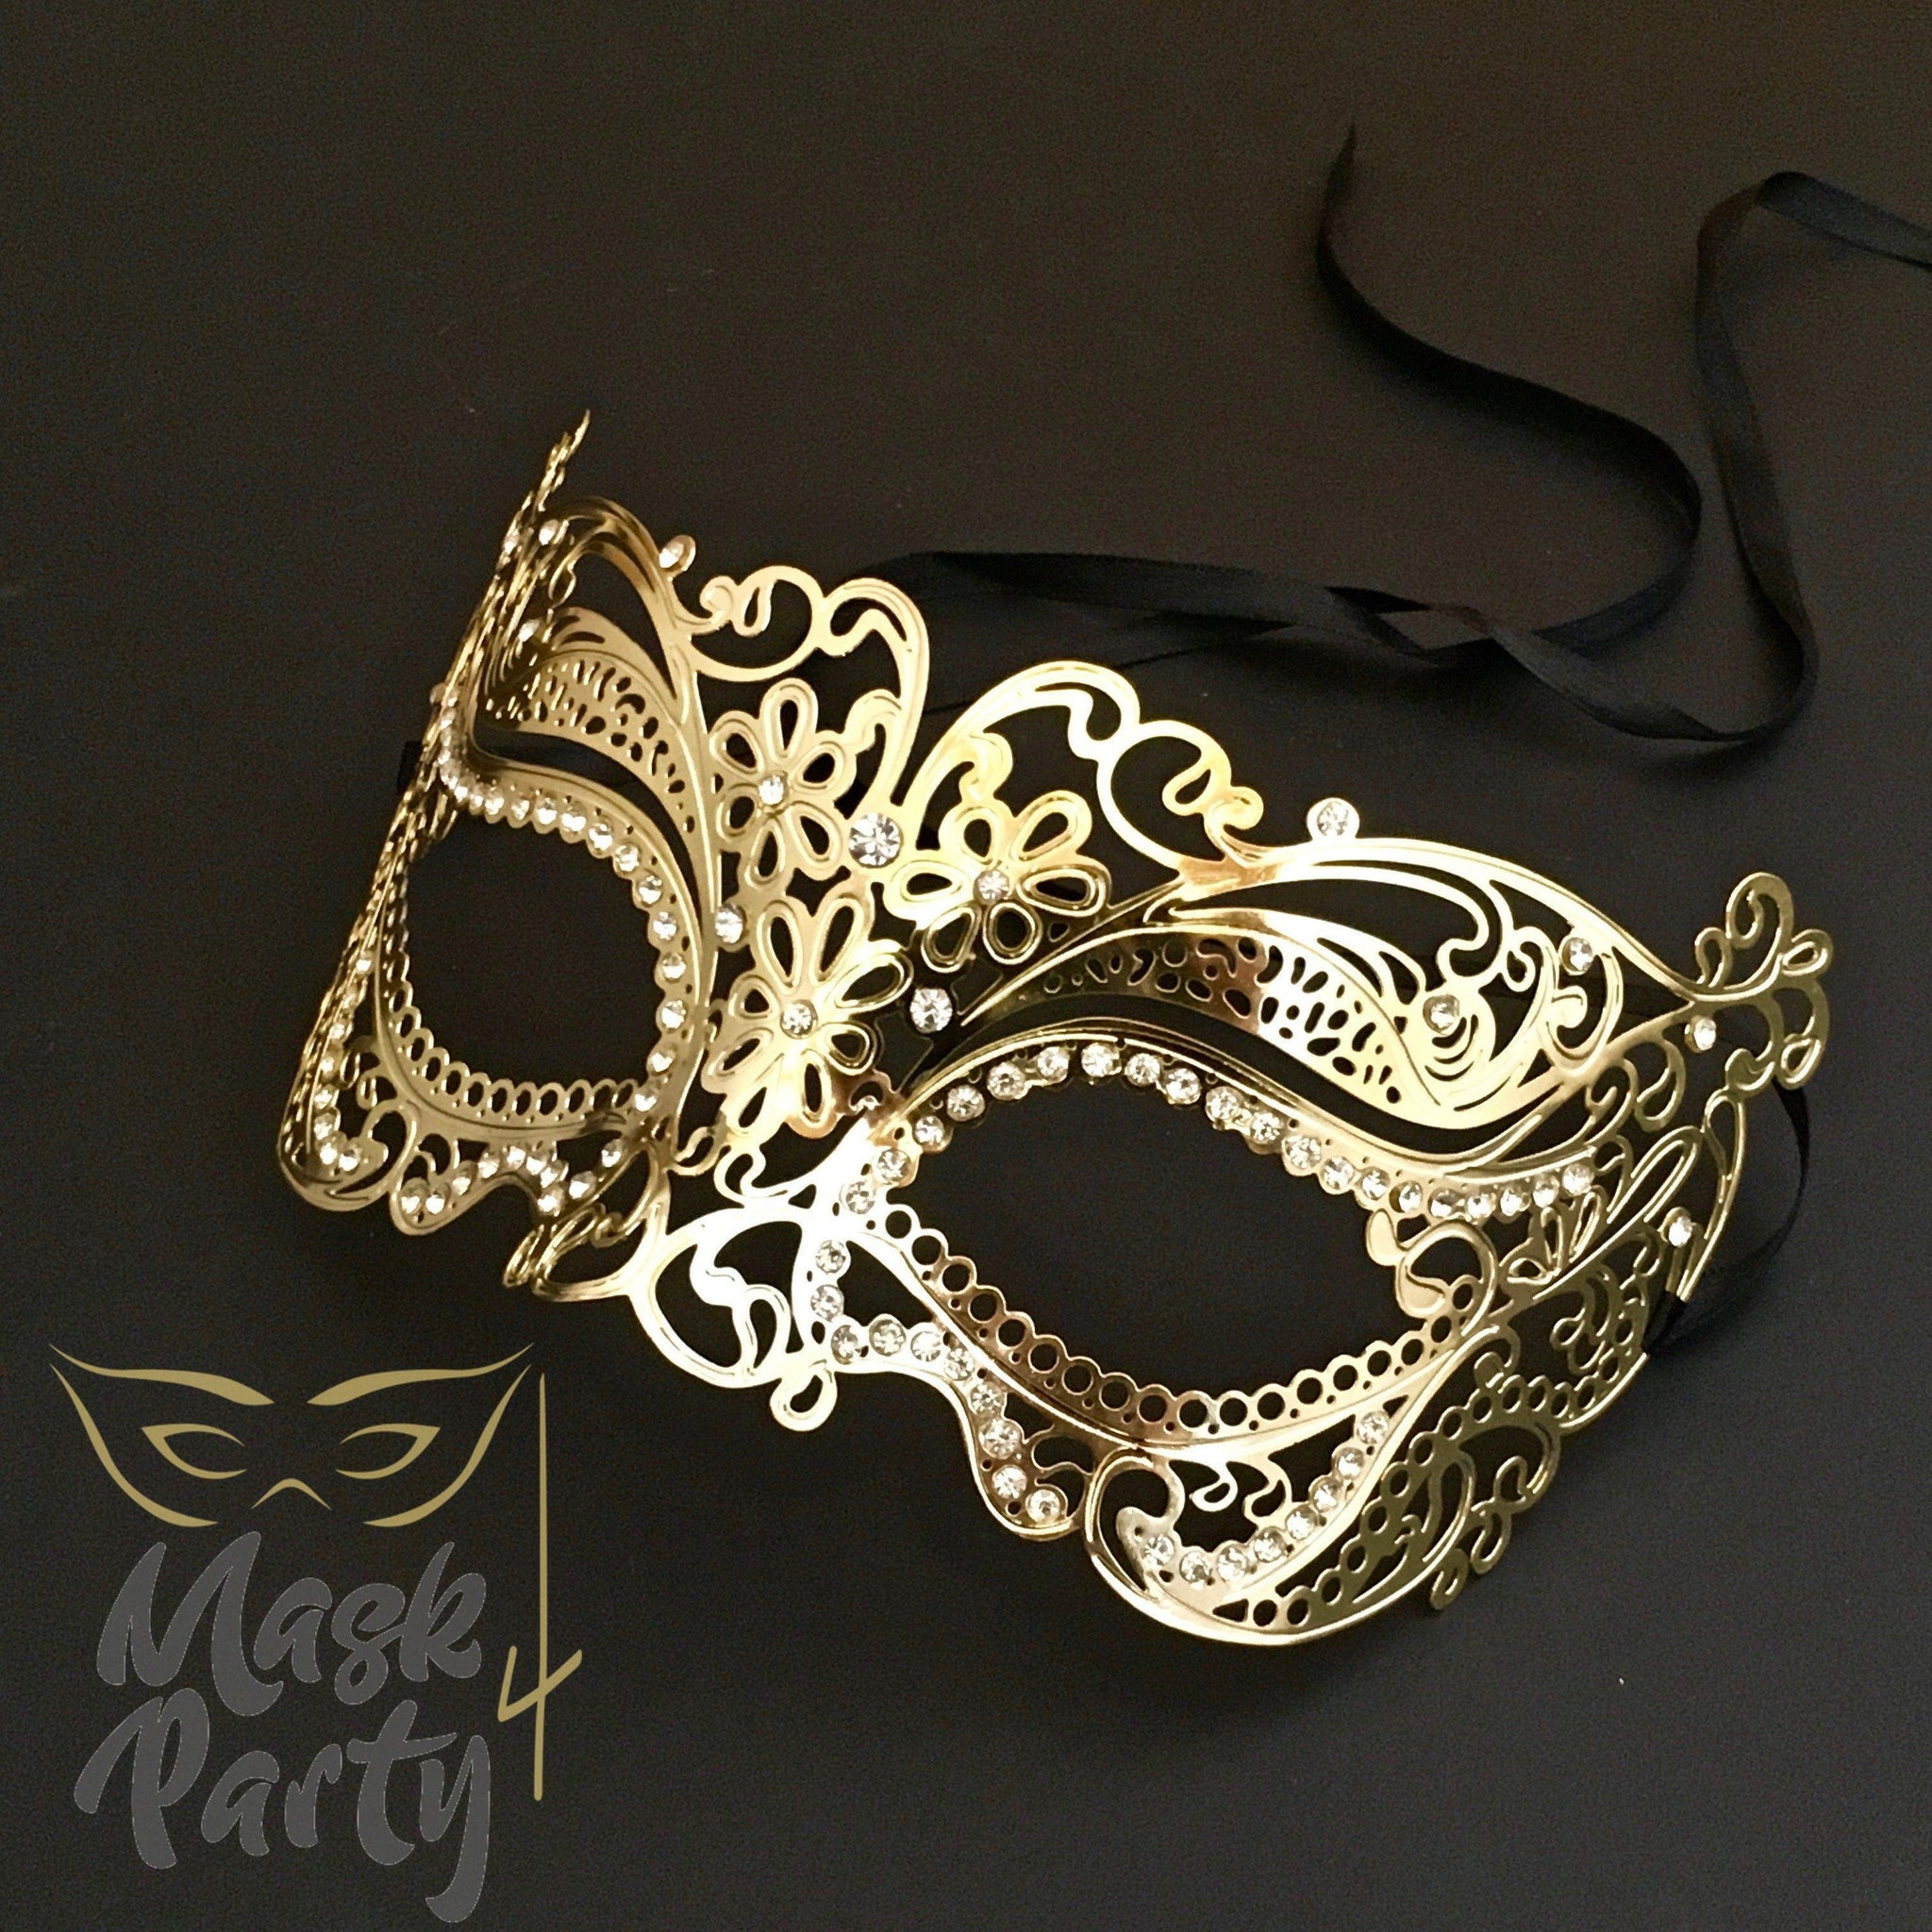 Masquerade Mask - Filigree Metal Eye - Gold - Mask4Party